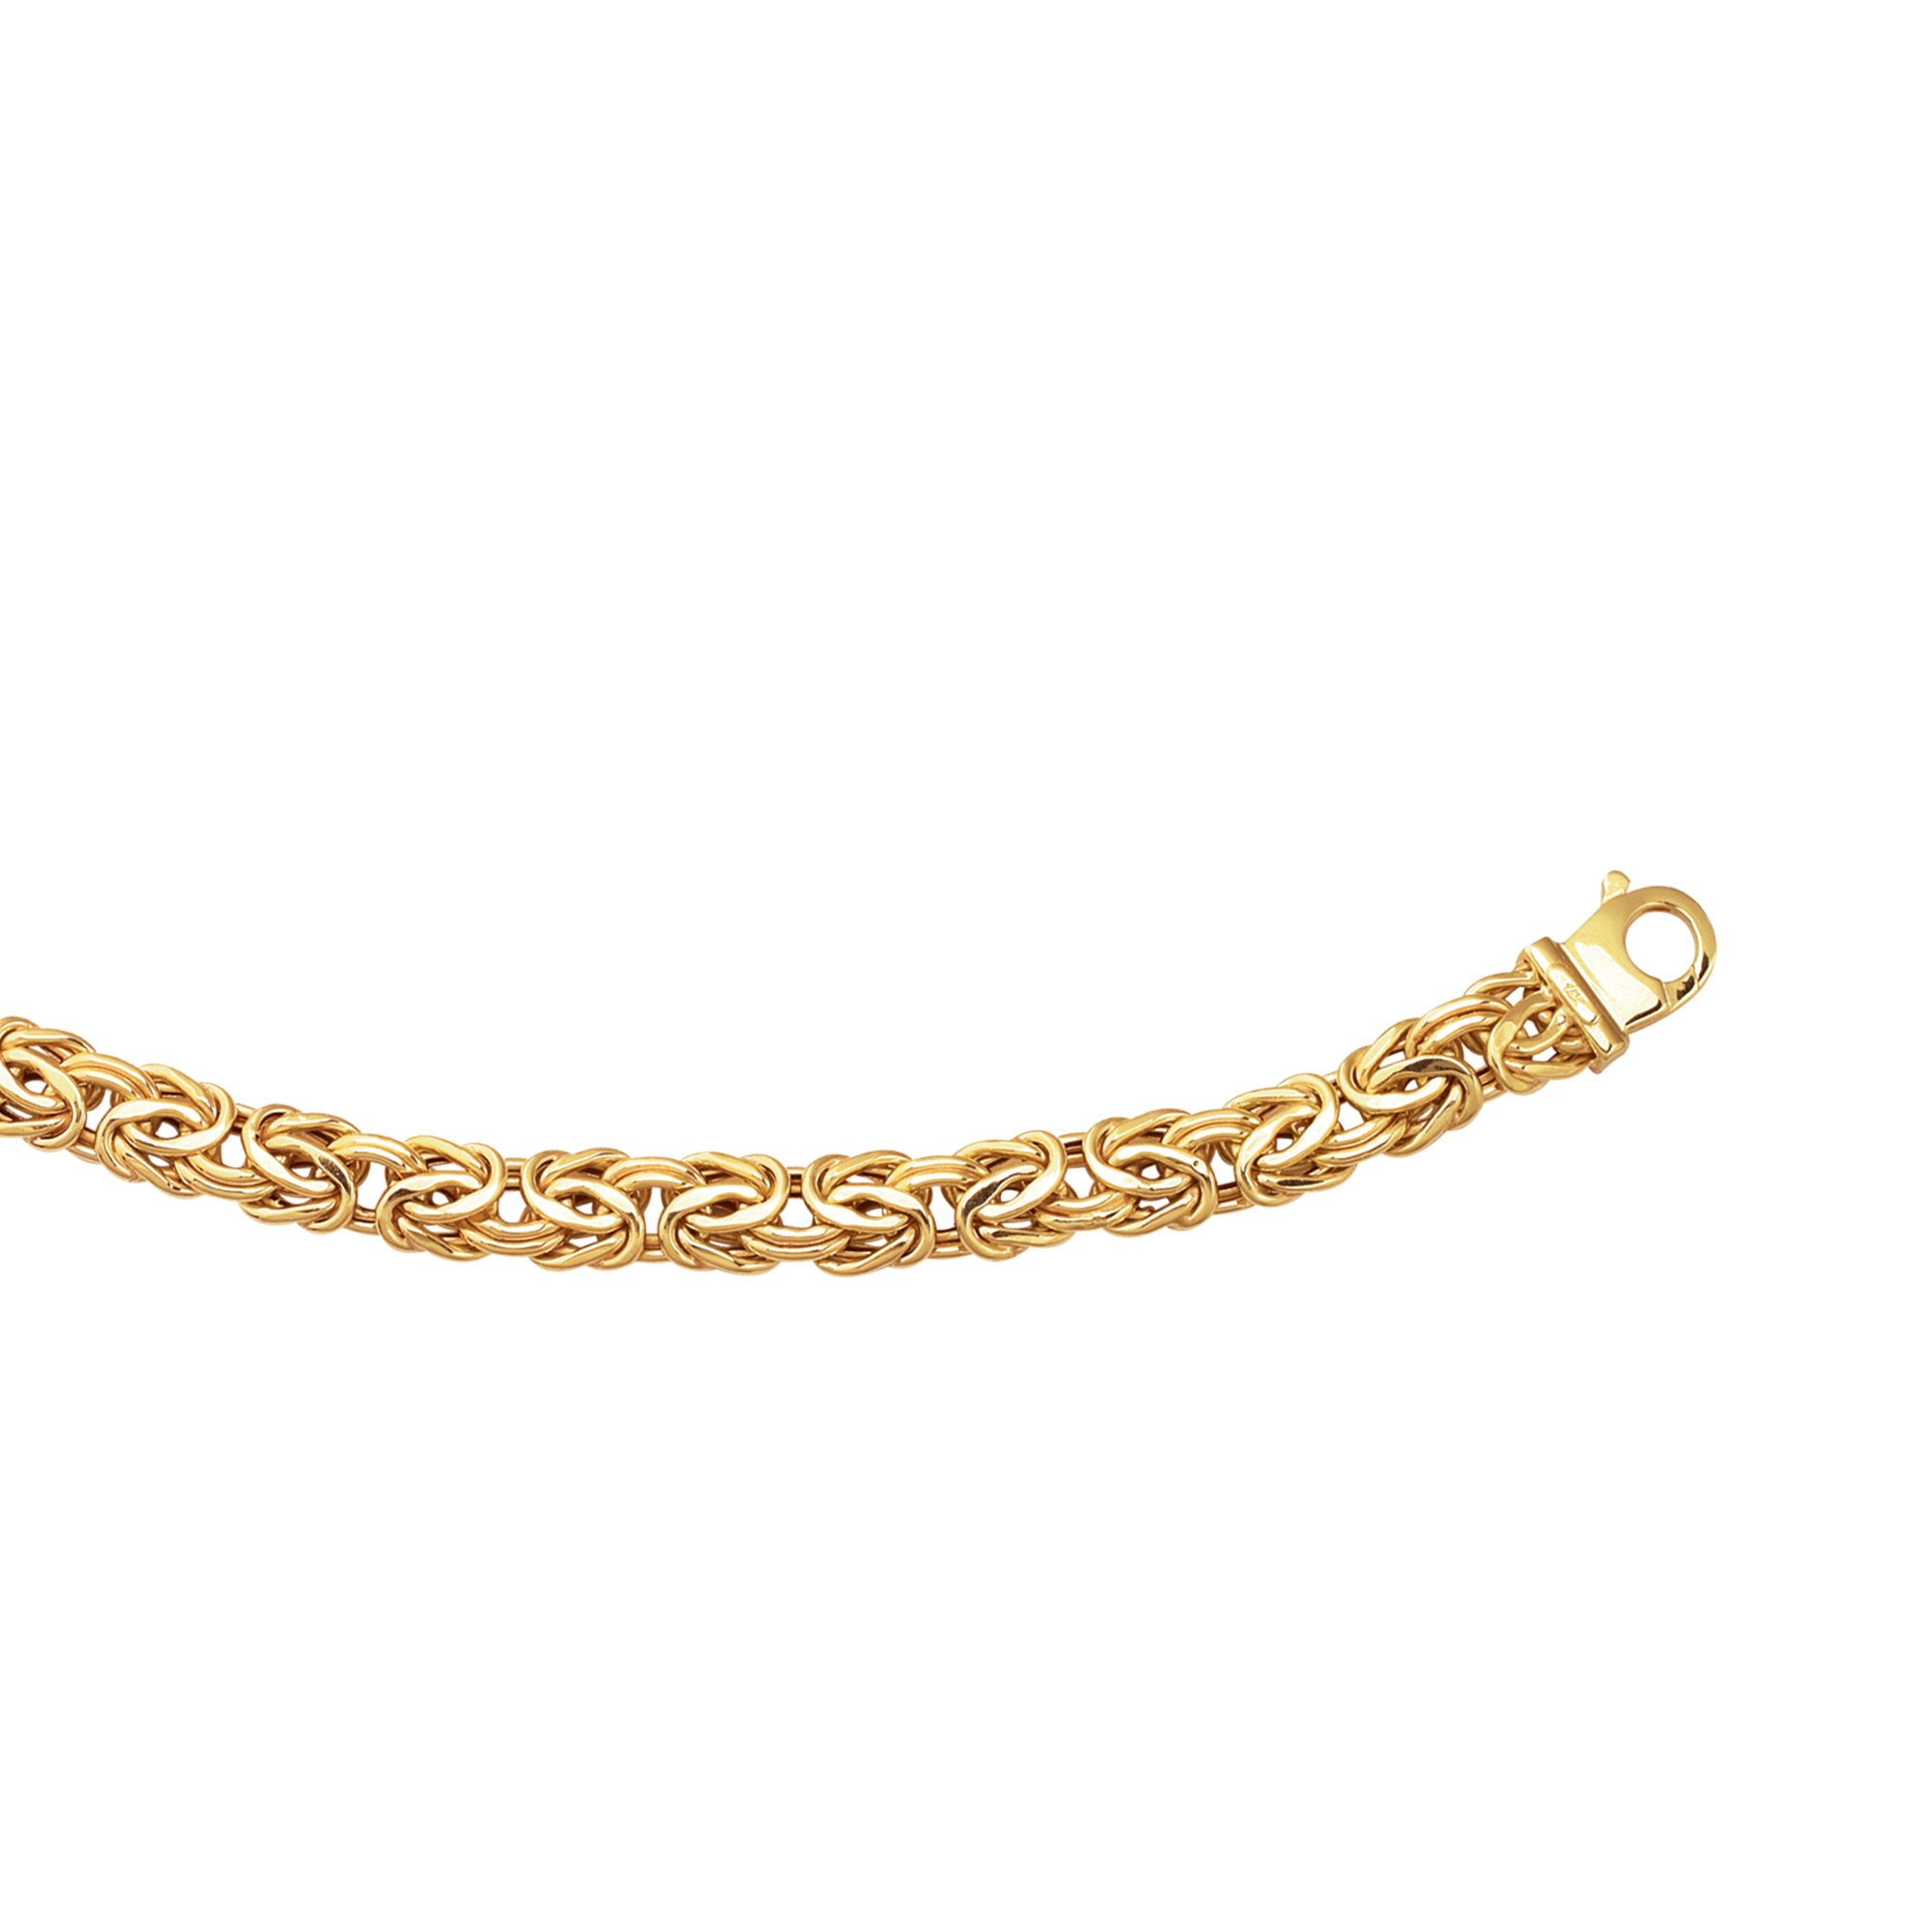 14kt 20 inches Yellow Gold 9.0mm Shiny Byzantine Fancy Necklace with Pear Shape Clasp